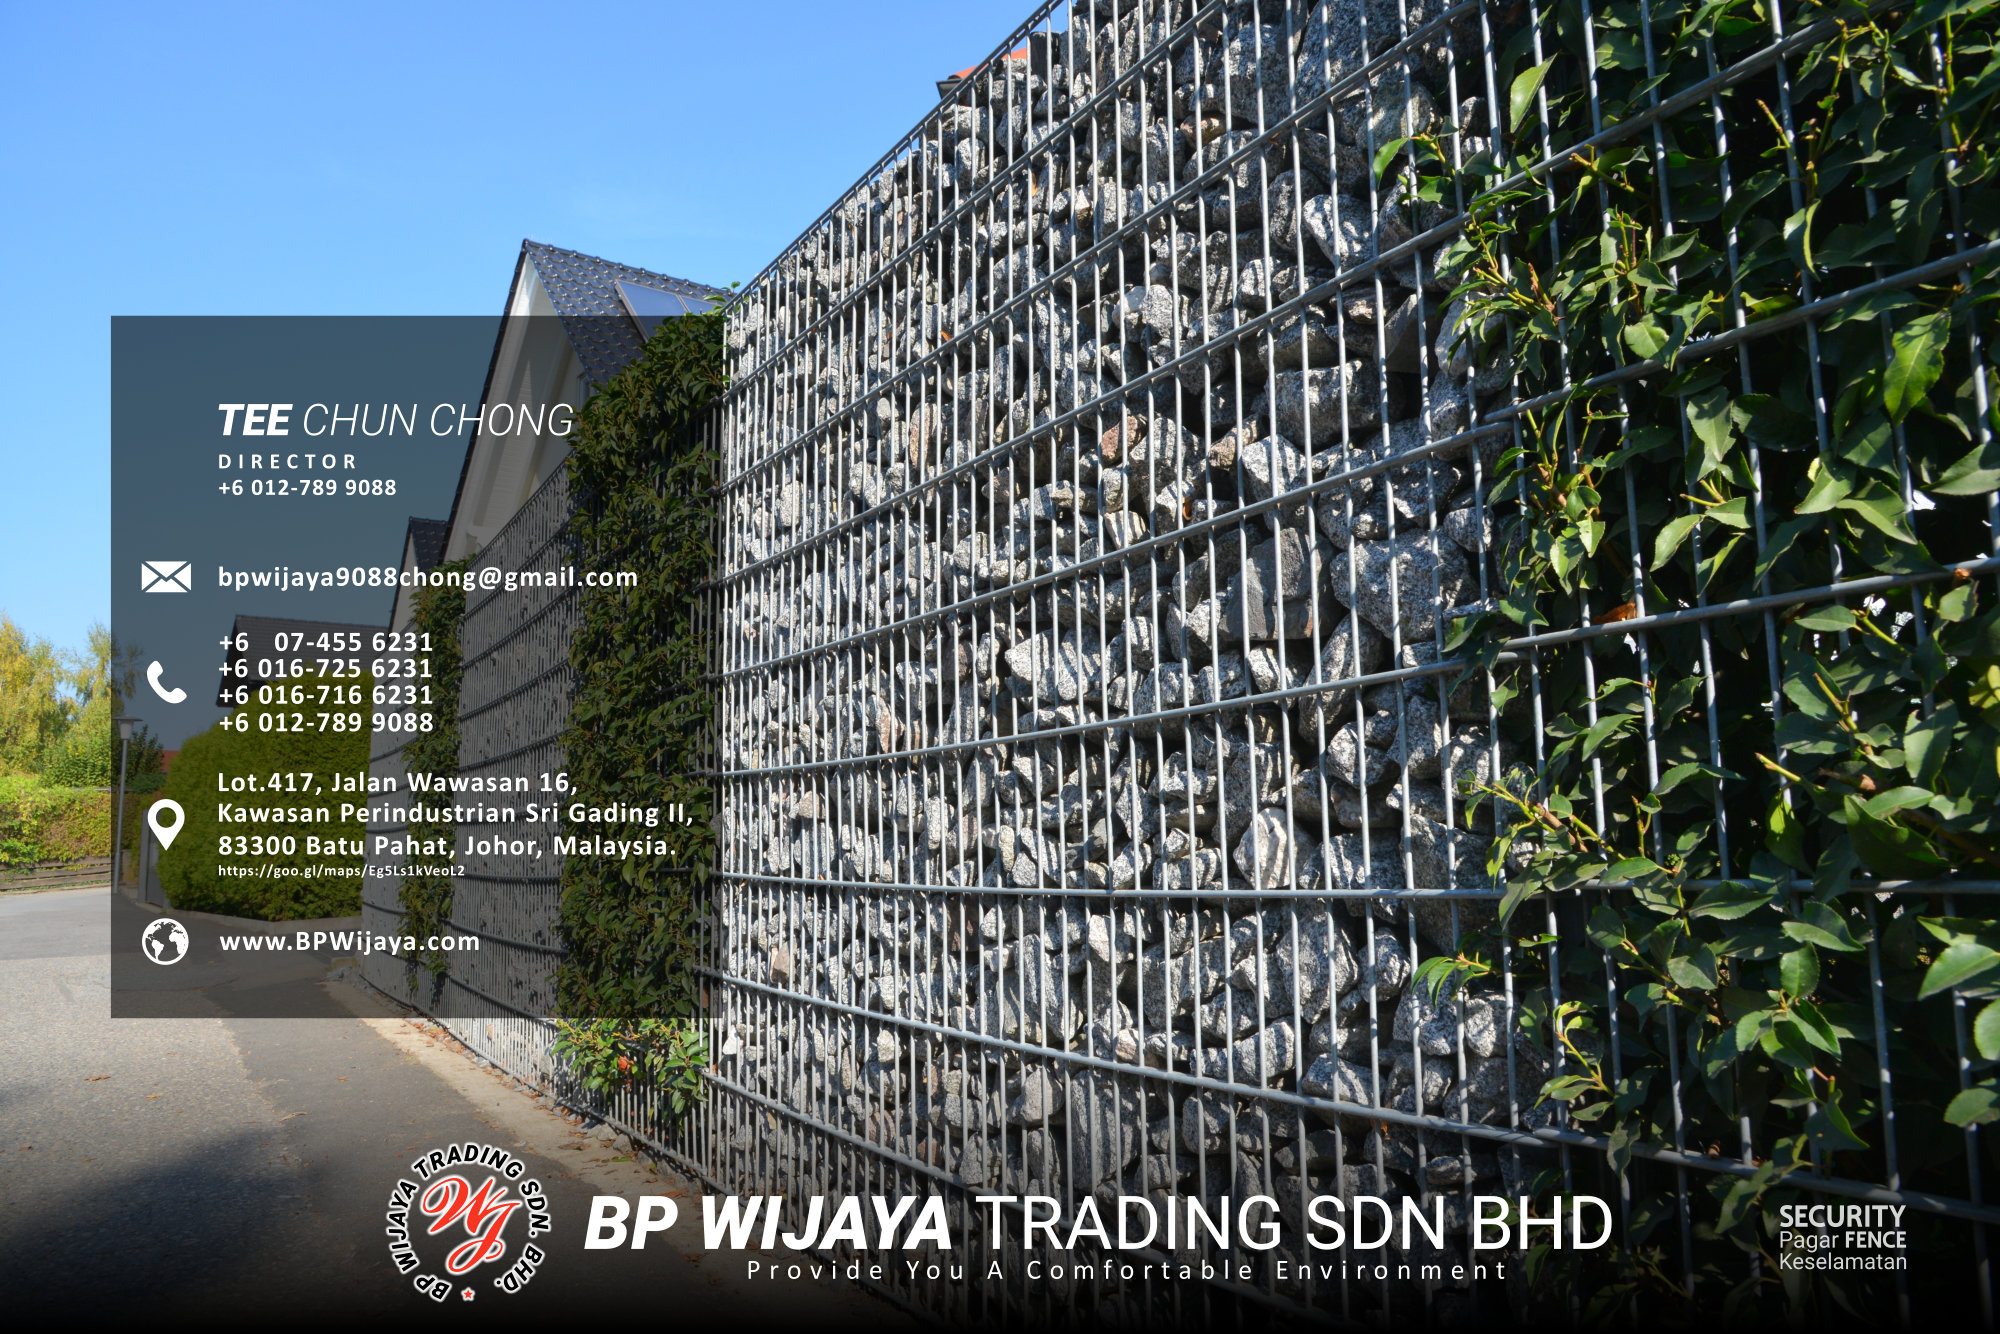 Kuala Lumpur Security Fence Supply we are manufacturer of security fence BP Wijaya Trading Sdn Bhd Safety Fence Building Materials for Housing Construction factory fence house beauty fence A03-030